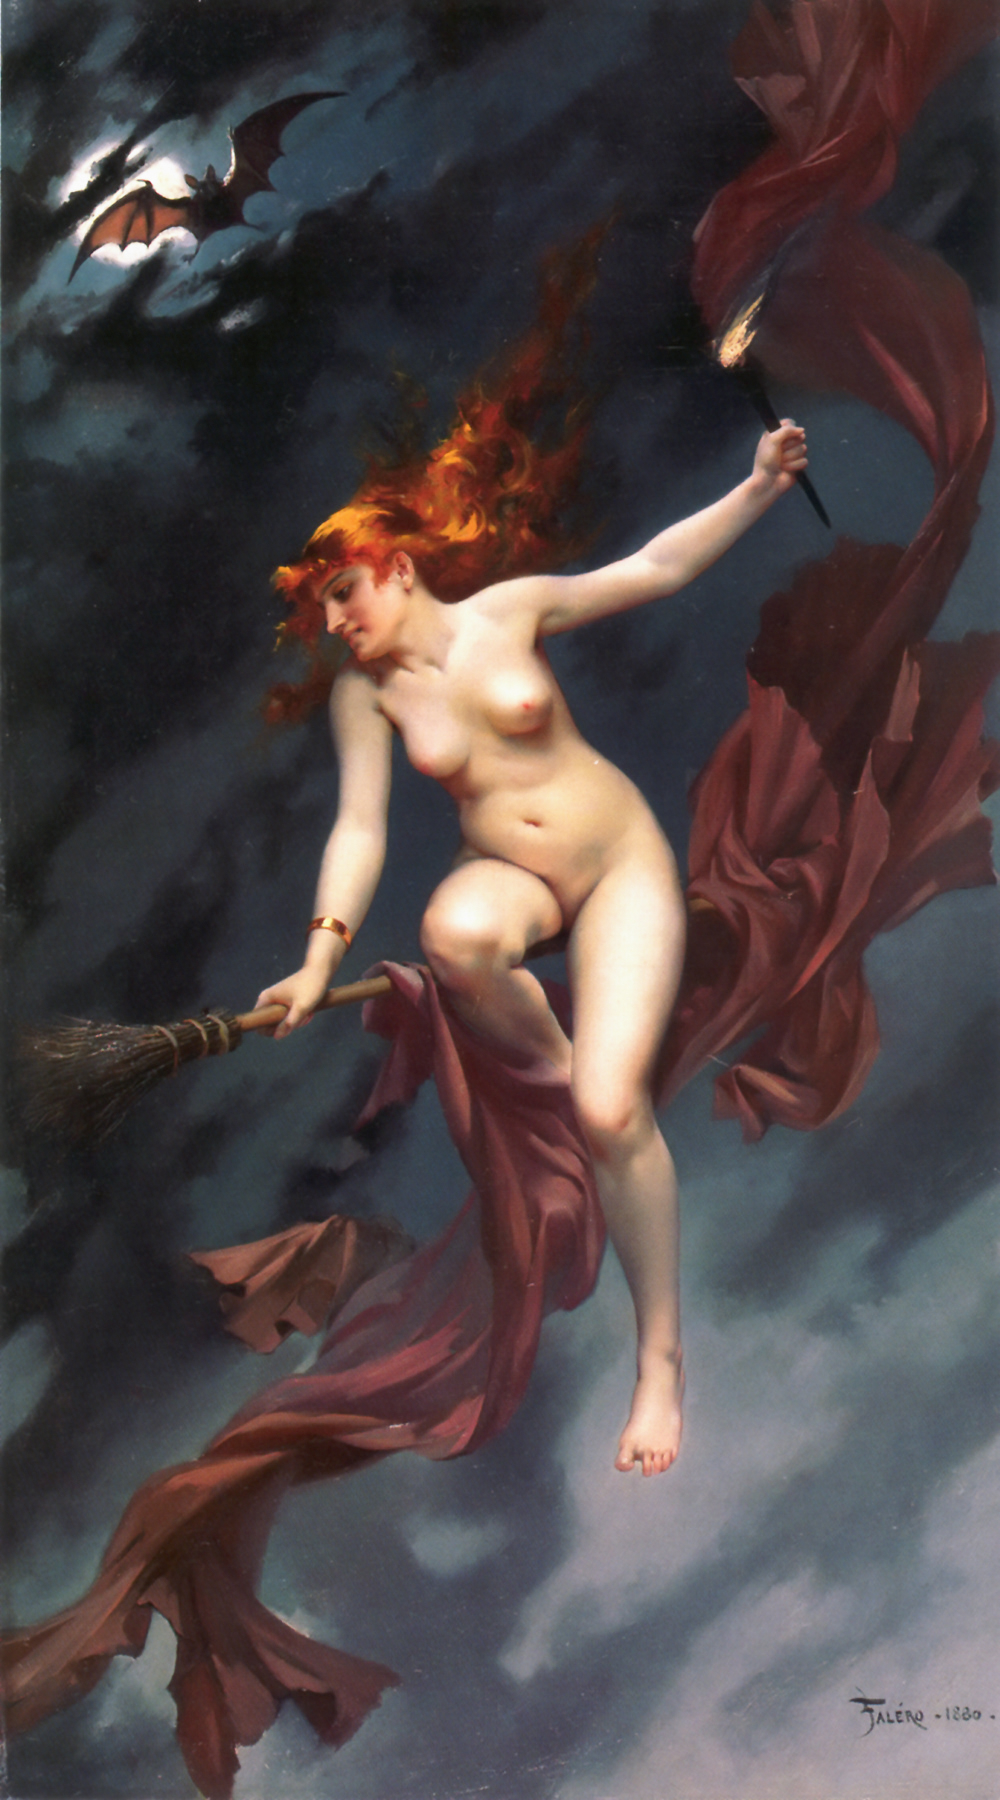 http://upload.wikimedia.org/wikipedia/commons/4/40/The_witches_Sabbath%2C_by_Luis_Ricardo_Falero.jpg